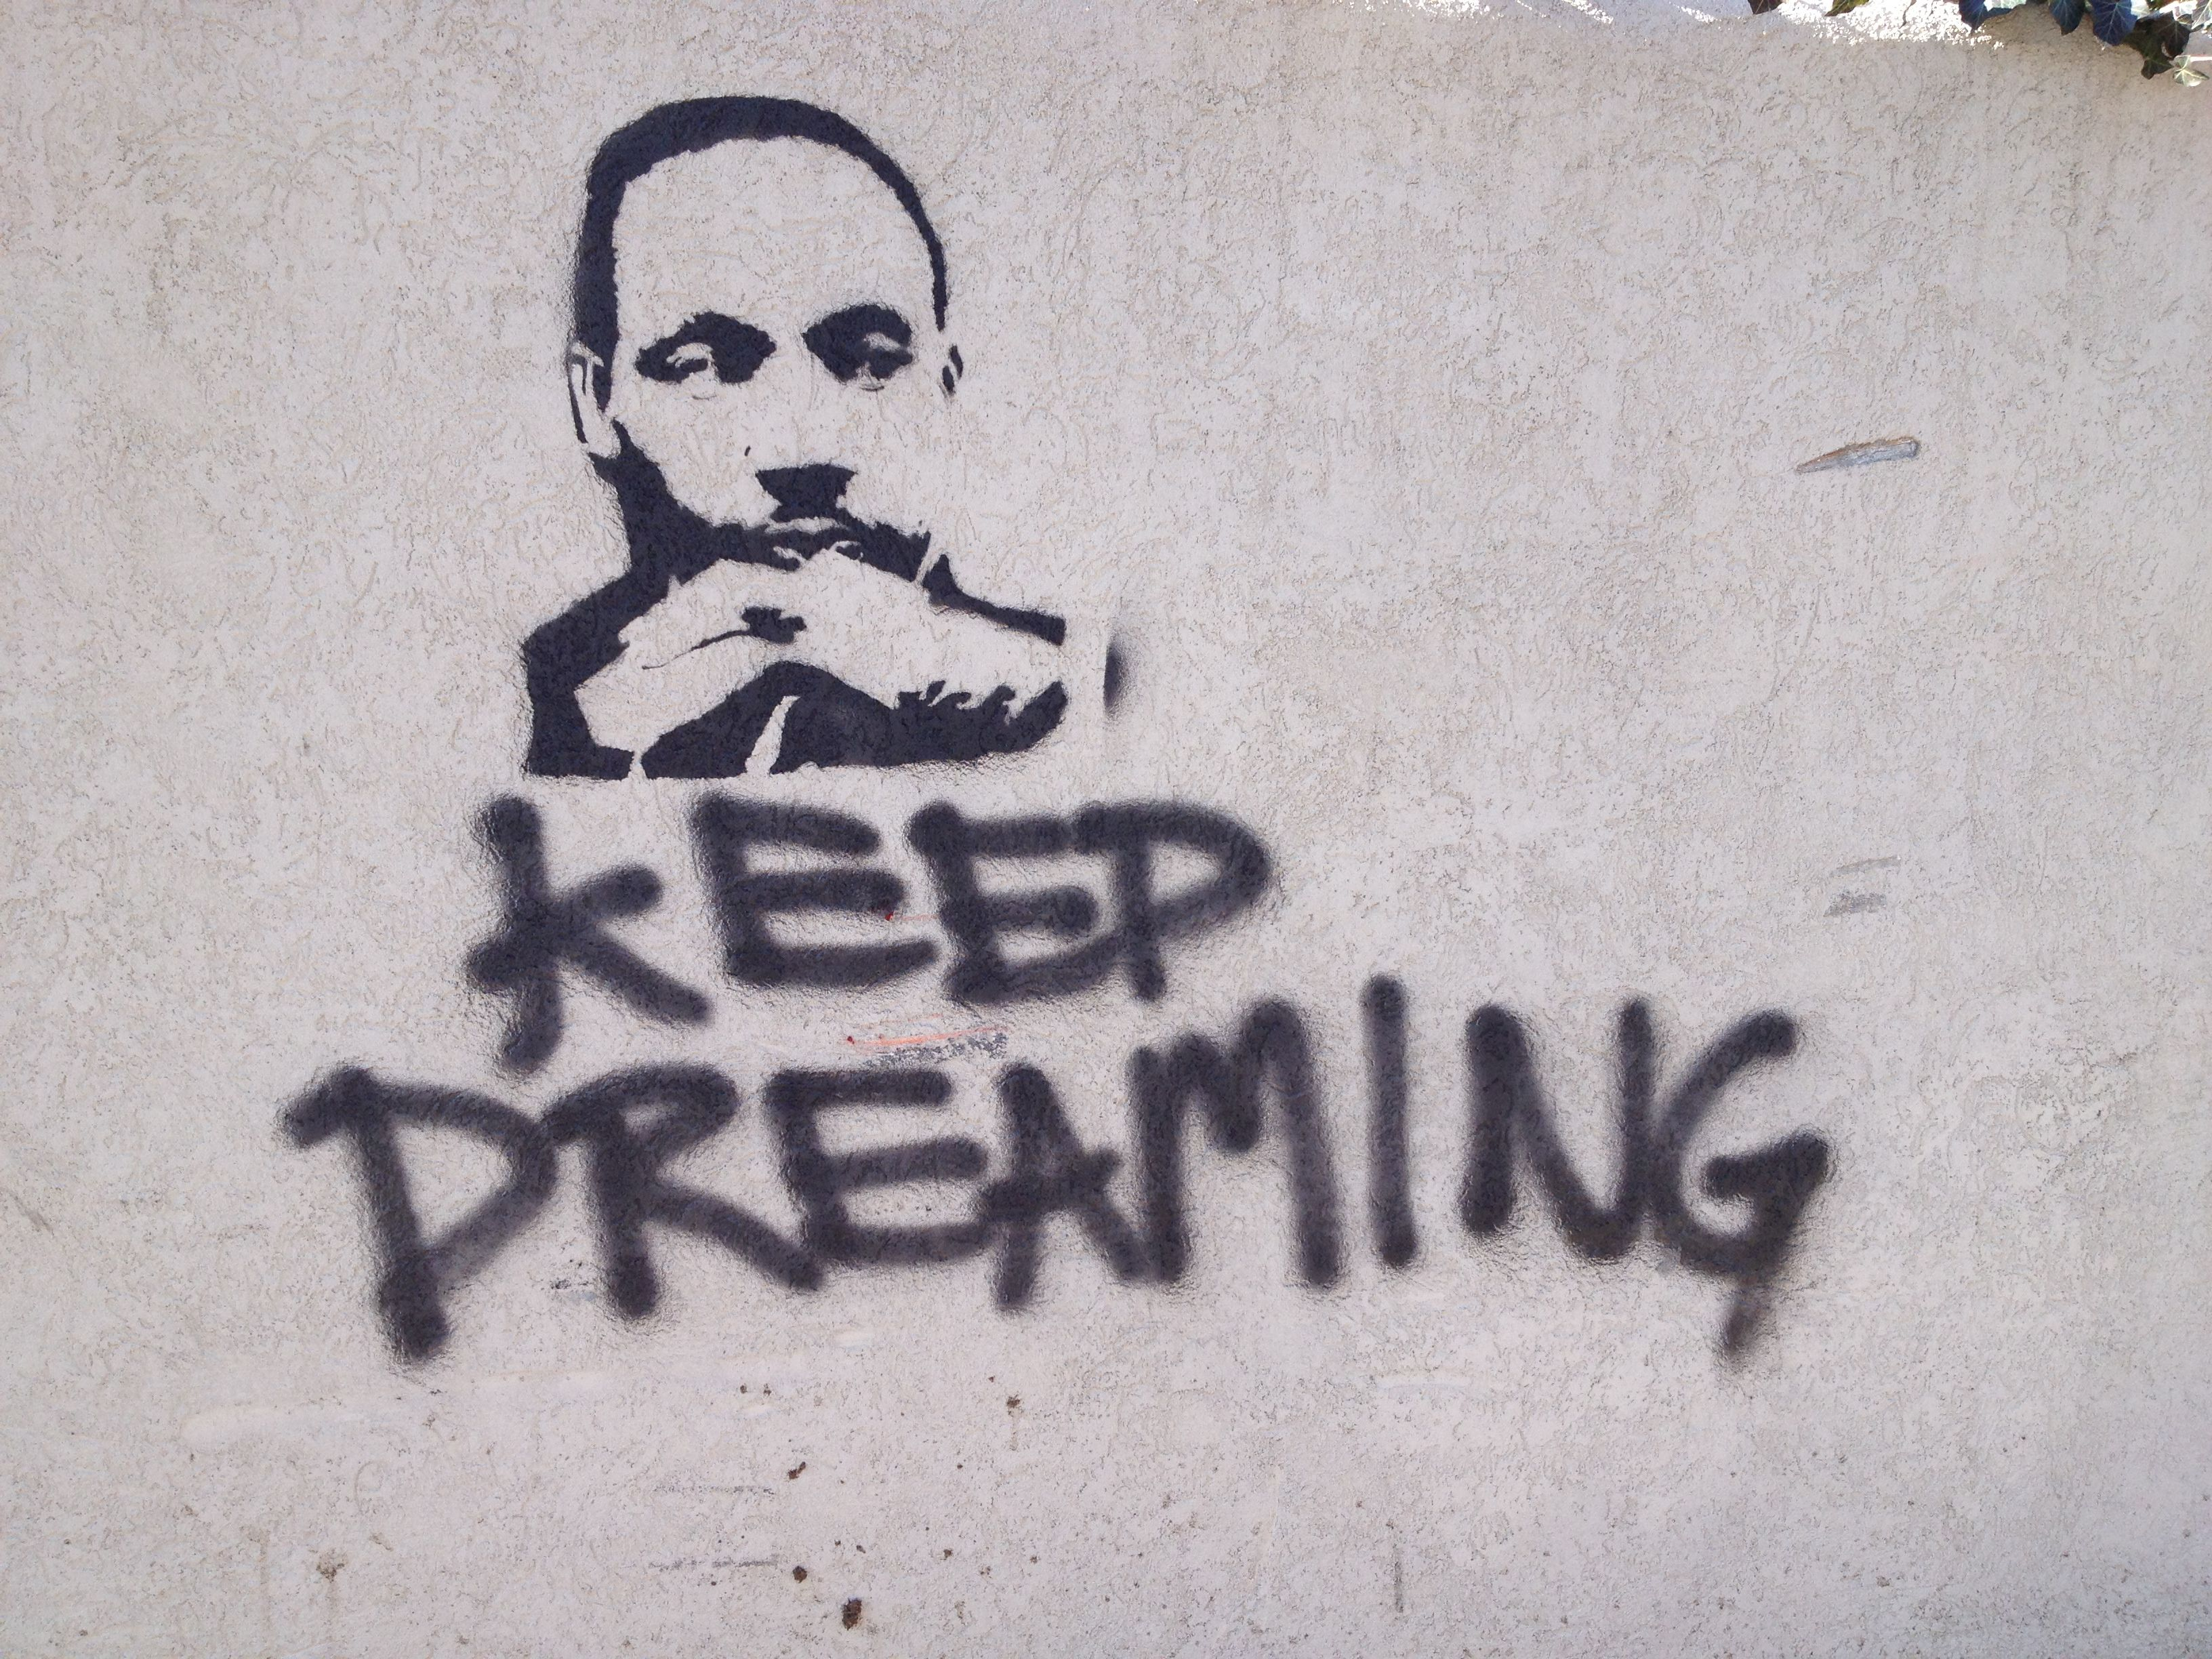 Graffiti spotted in an alley on martin luther king jrs birthday